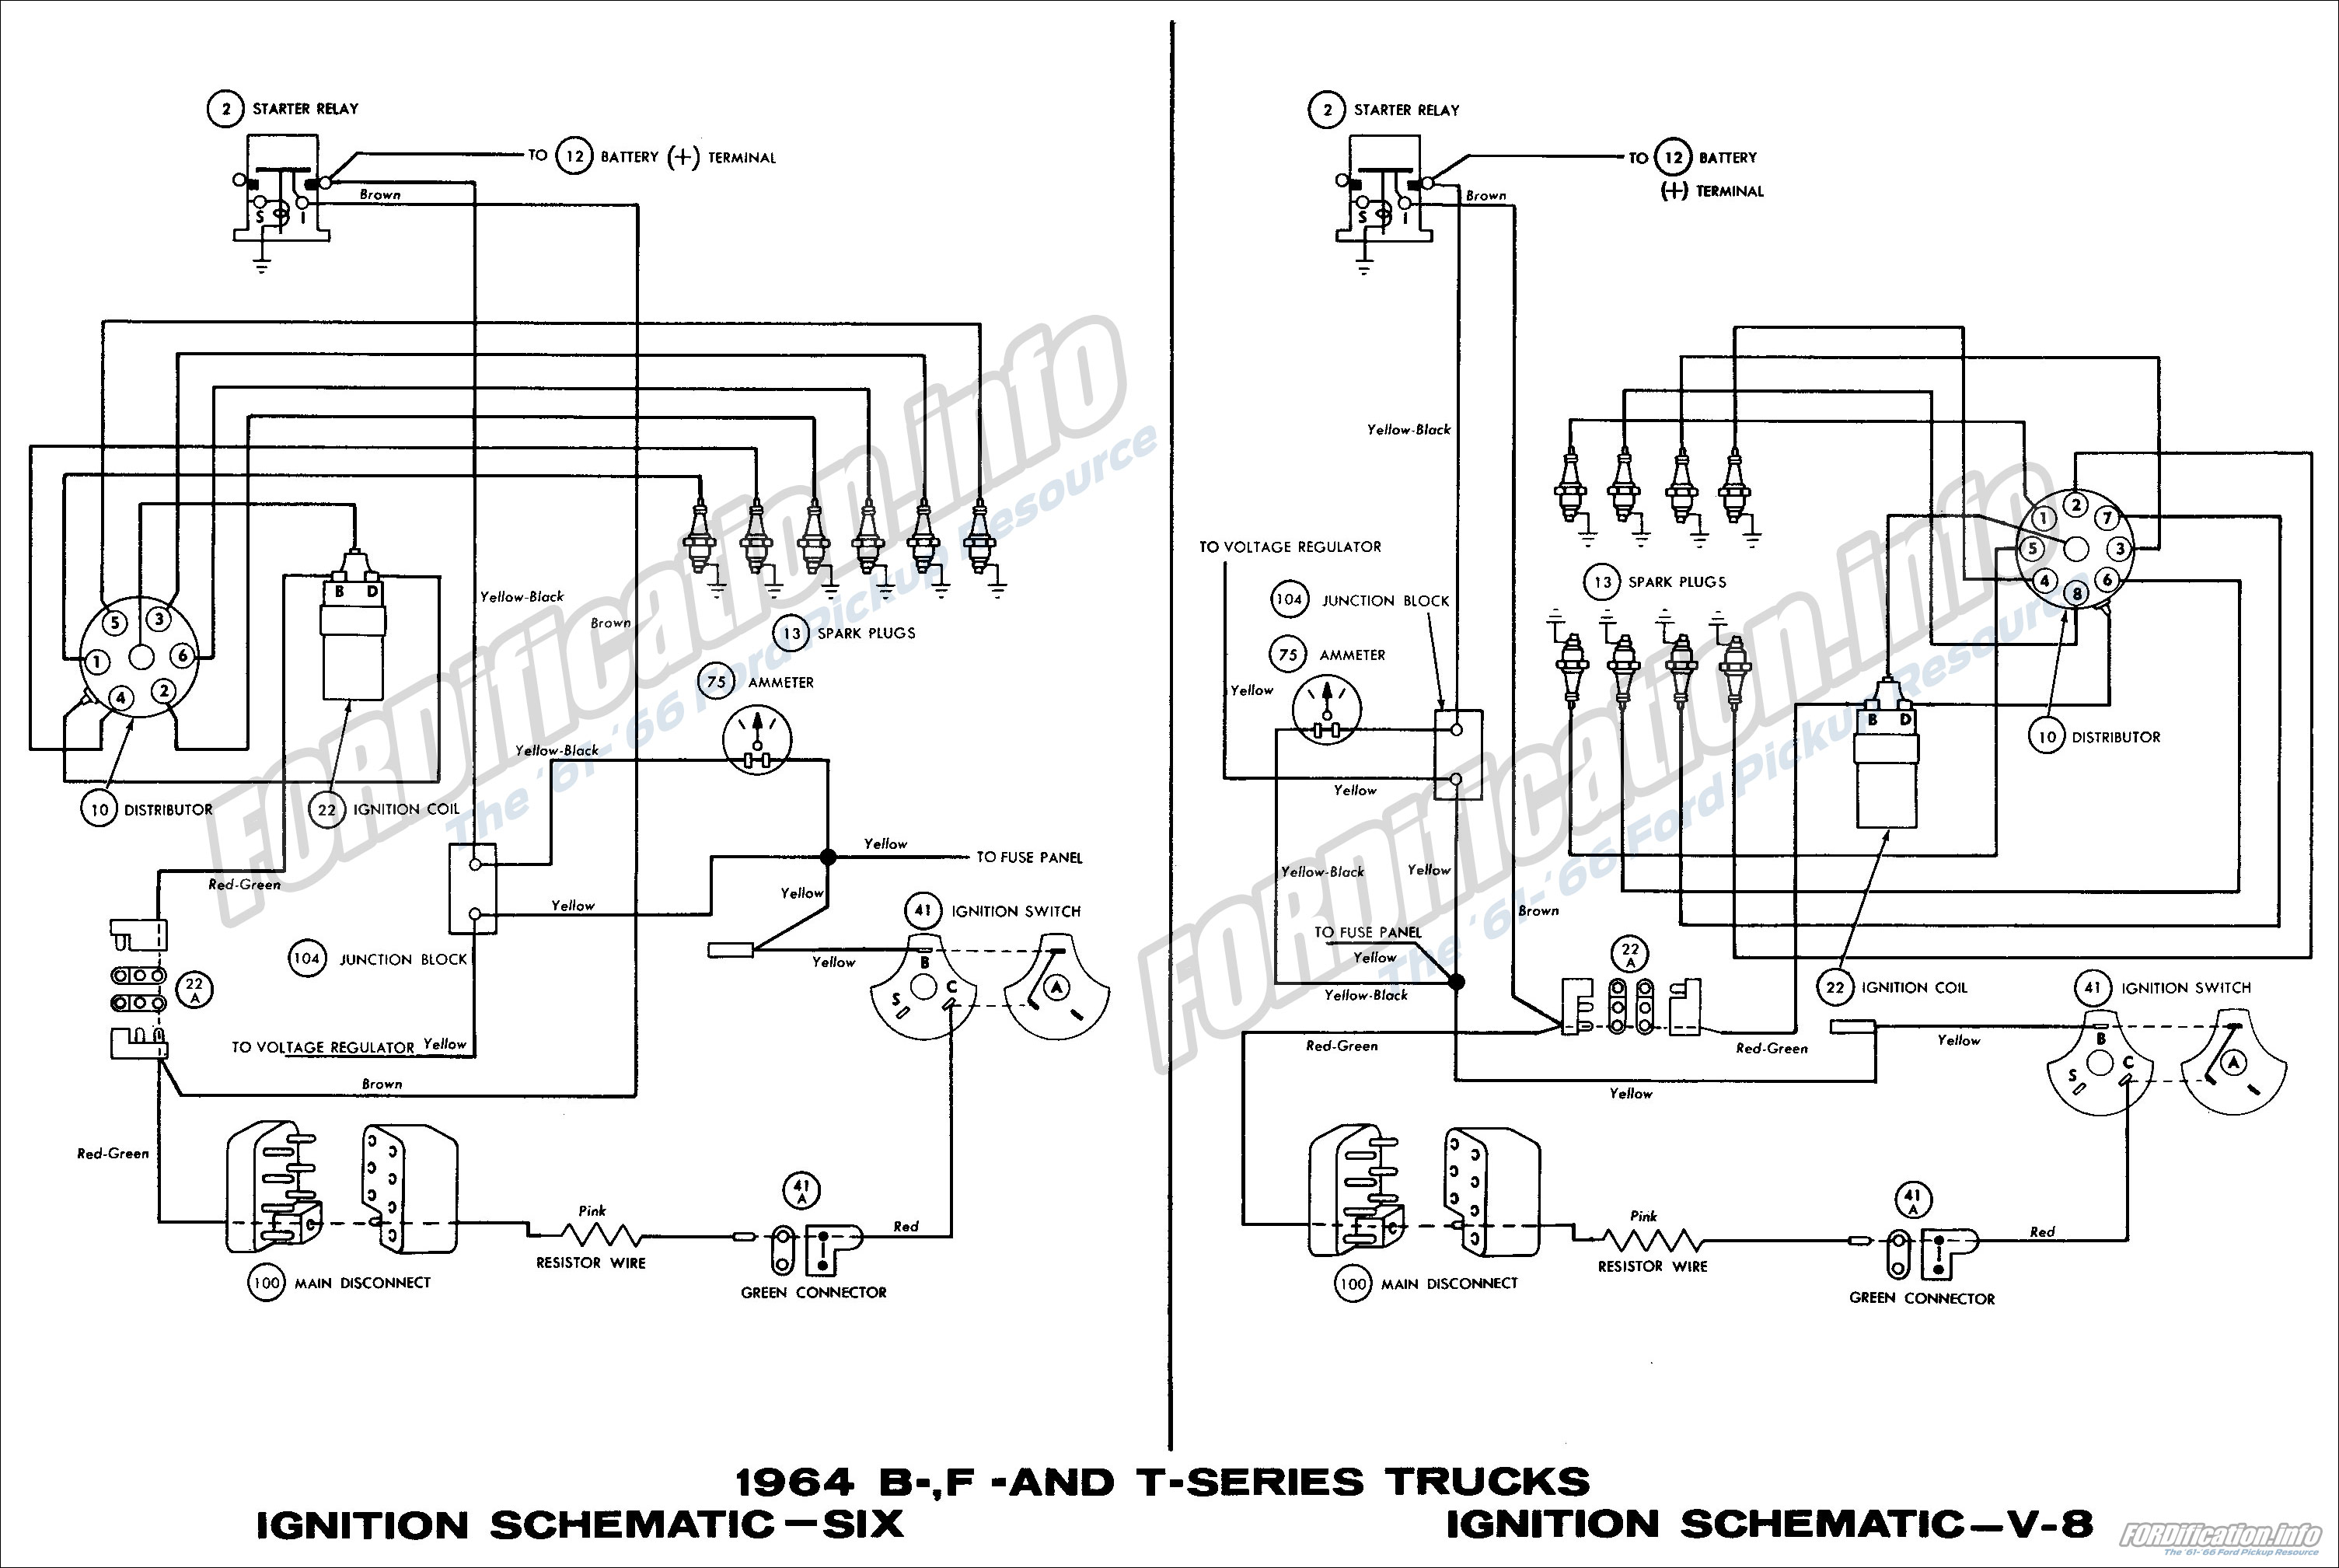 1964_03 1964 ford truck wiring diagrams fordification info the '61 '66 fordification wiring diagram at virtualis.co